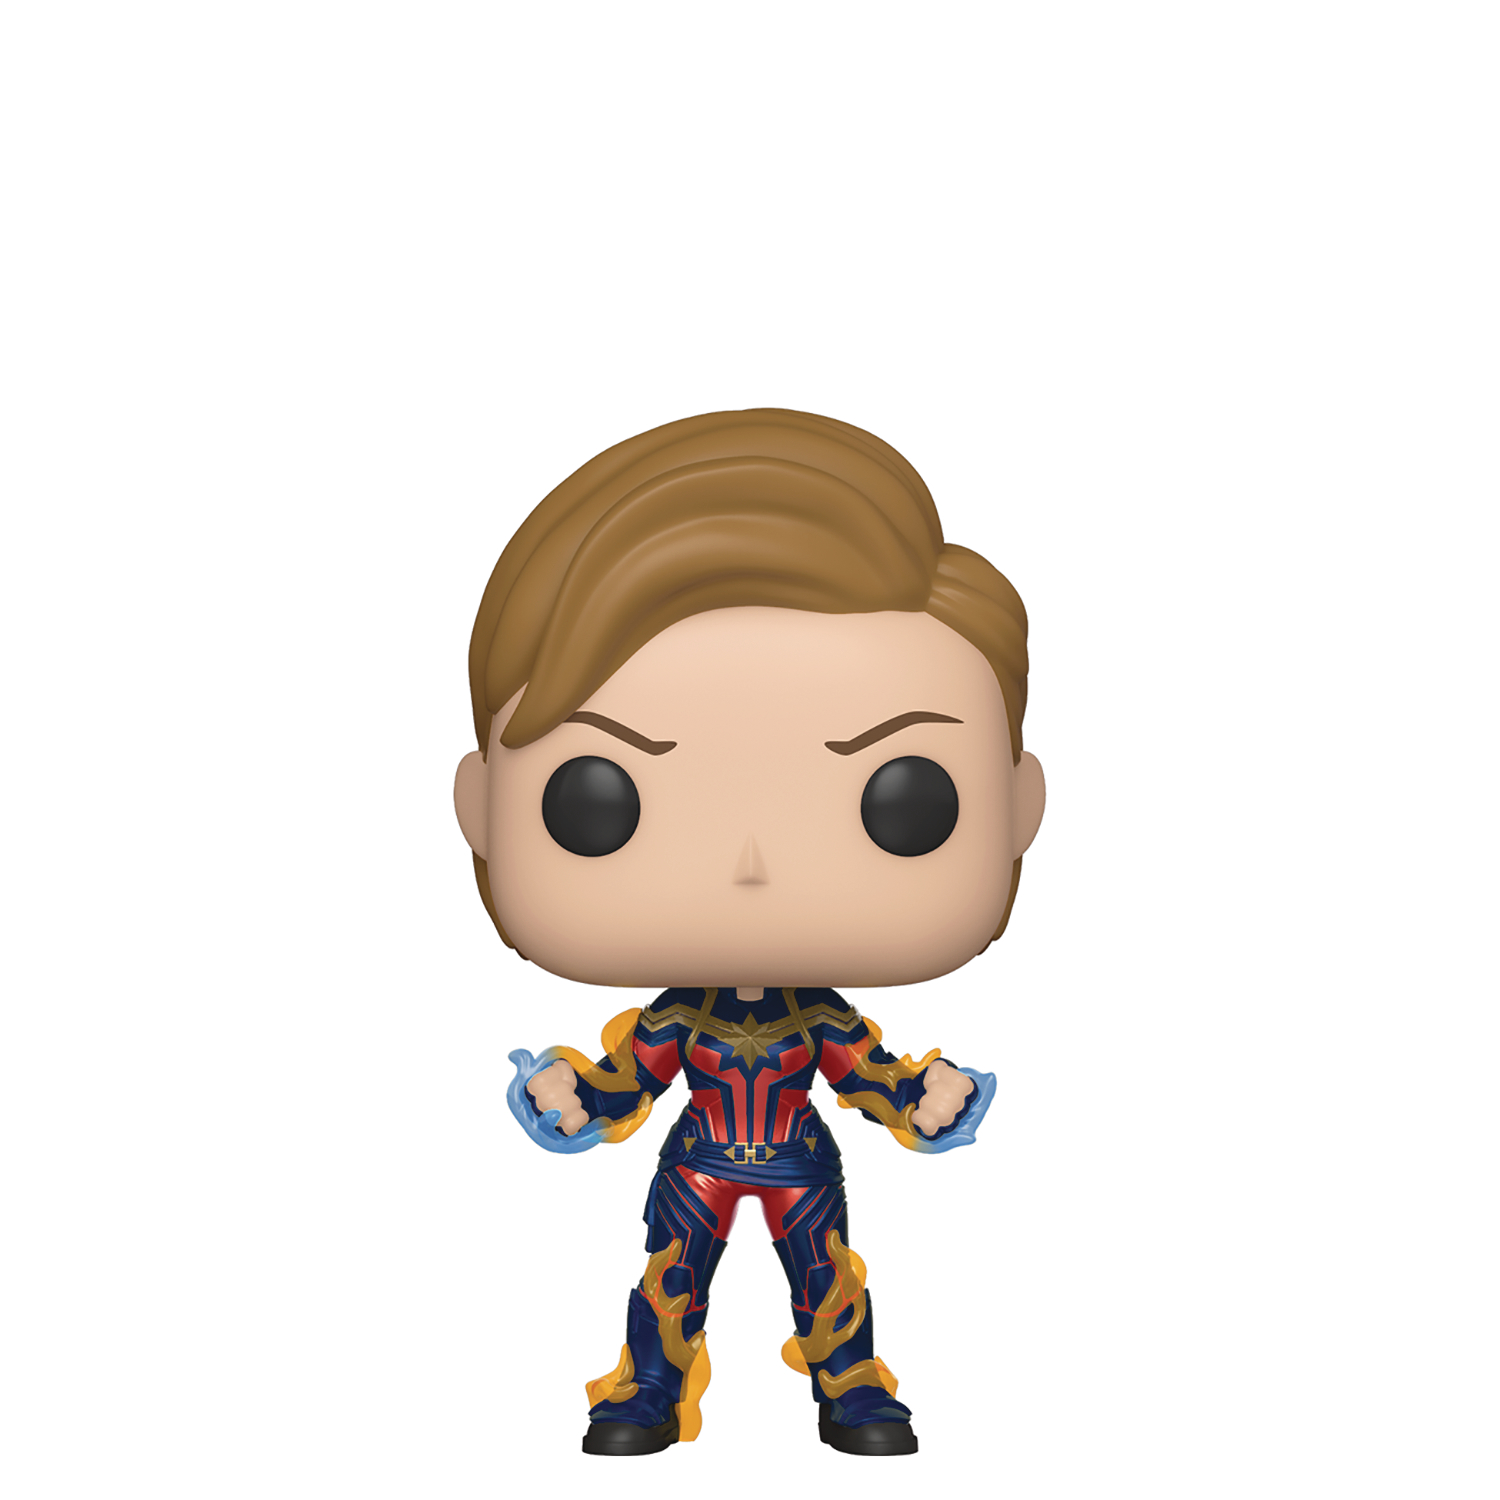 POP MARVEL ENDGAME CAPTAIN MARVEL W/ NEW HAIR VIN FIG